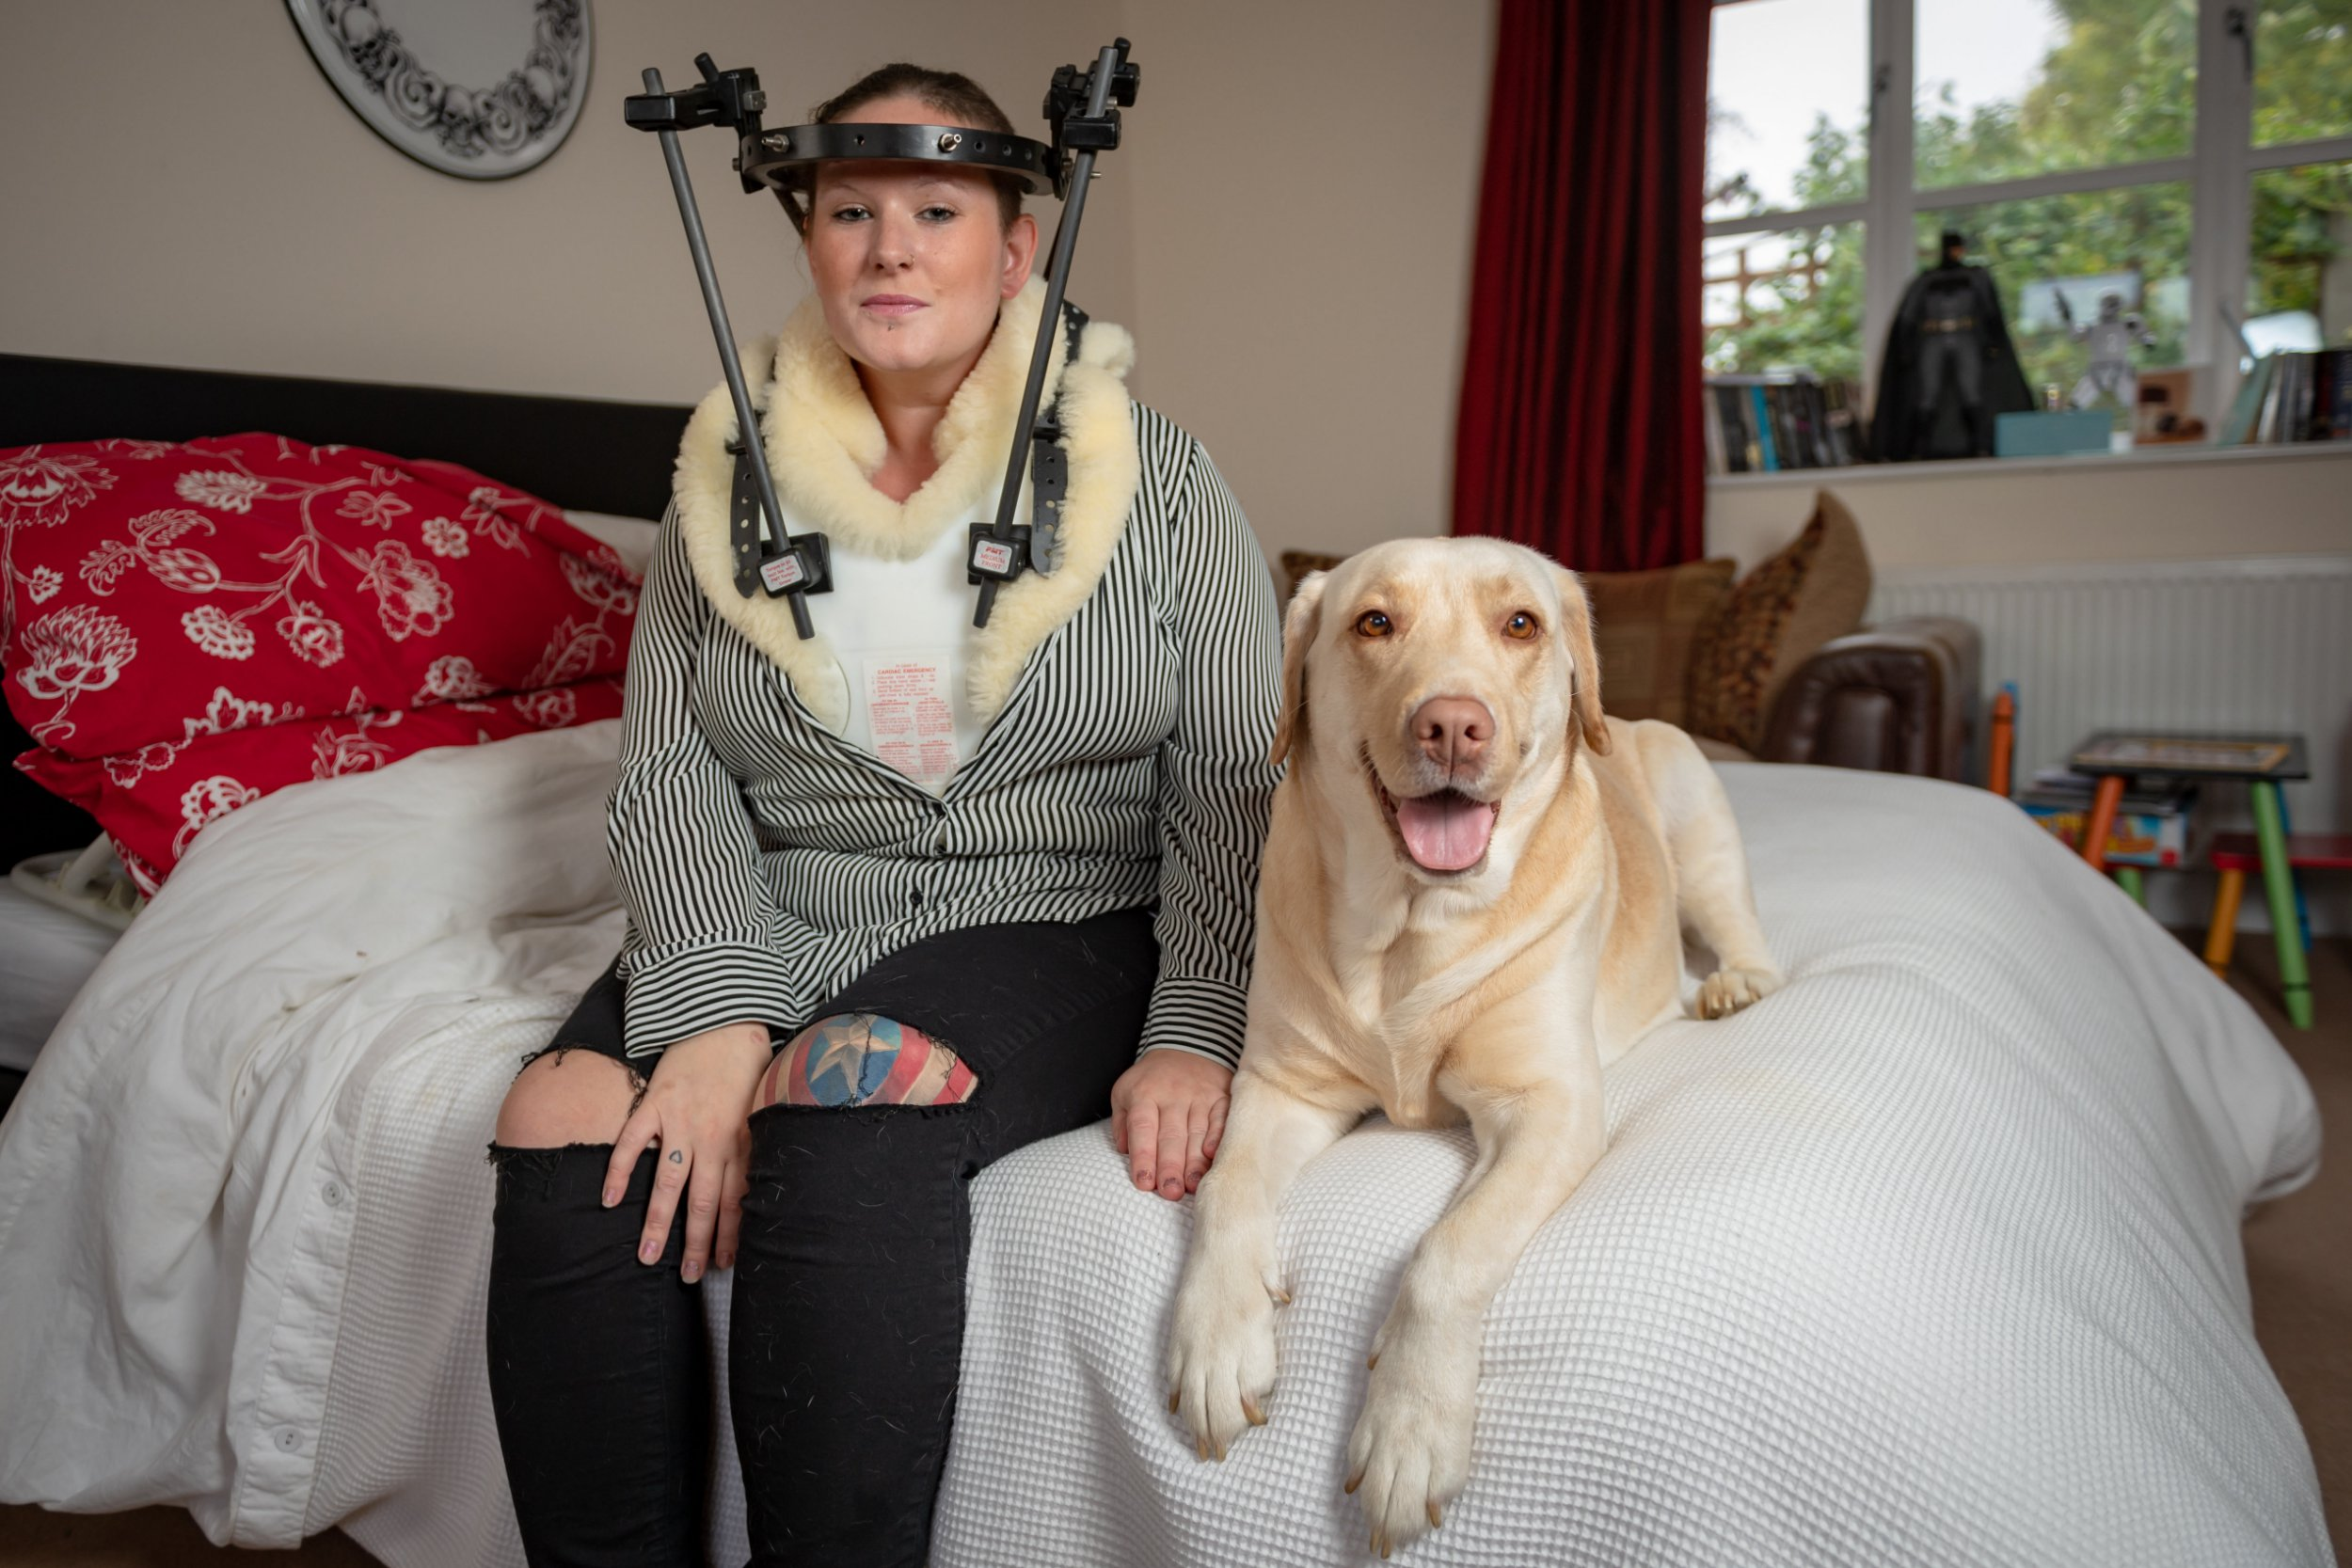 Bexx Hunt age 28 with her Golden Labrador Tequila age 5. See SWNS Cambridge copy SWCAfall:A mum was almost paralysed after tripping over her dog and falling down the stairs in a freak accident.Bexx Hunt (corr), 28, broke one of the vertebrae in her neck after tumbling over golden Labrador Tequila when she got up in the night to use the loo.She was told by doctors that if the break had been in a different bone, she would have been left paralysed.